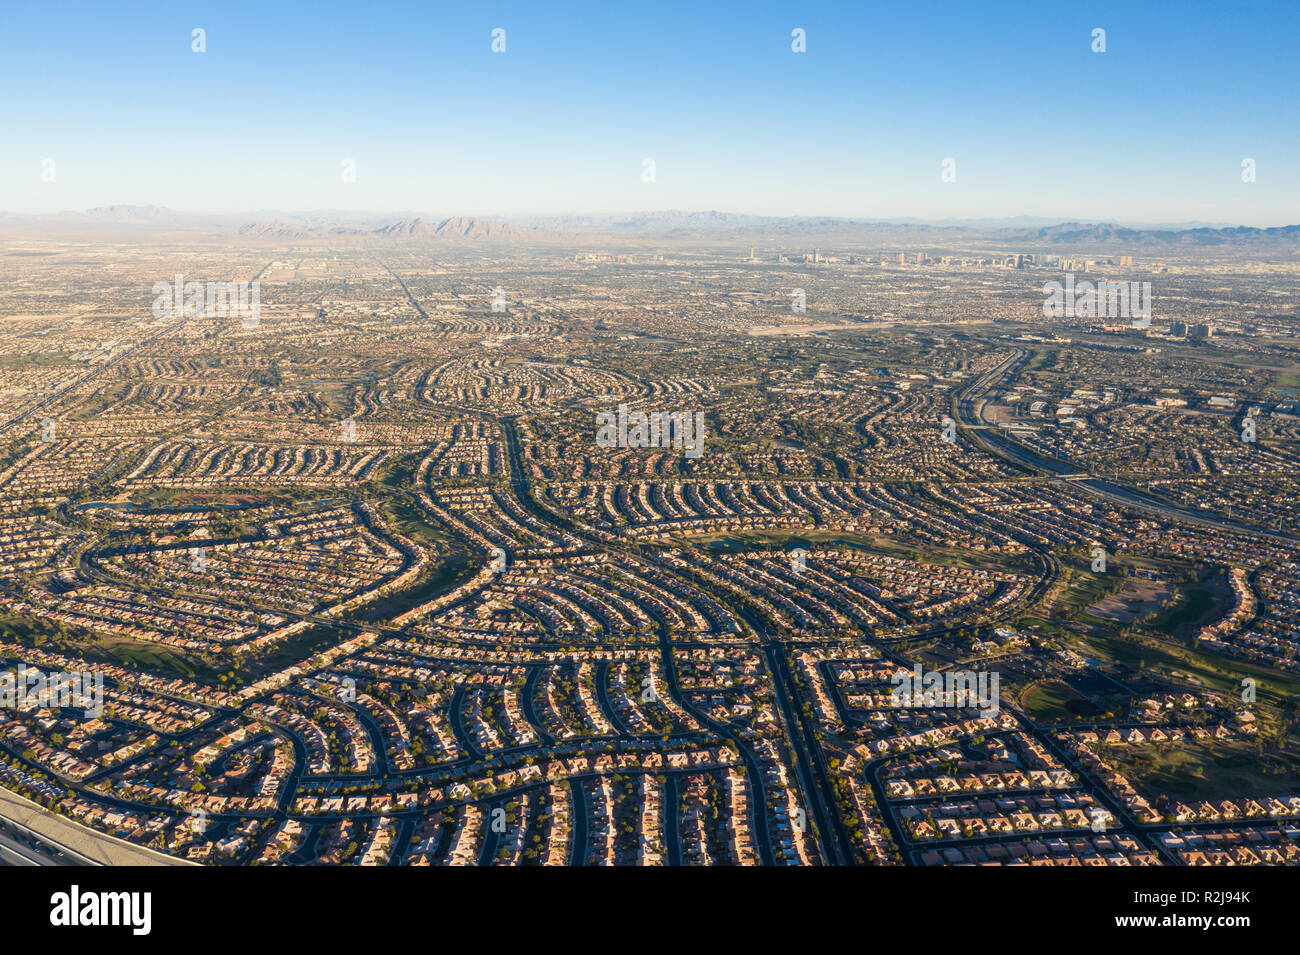 An aerial view shows dense housing developments in Summerlin, just outside the city of Las Vegas, Nevada. This area is quickly being developed. Stock Photo